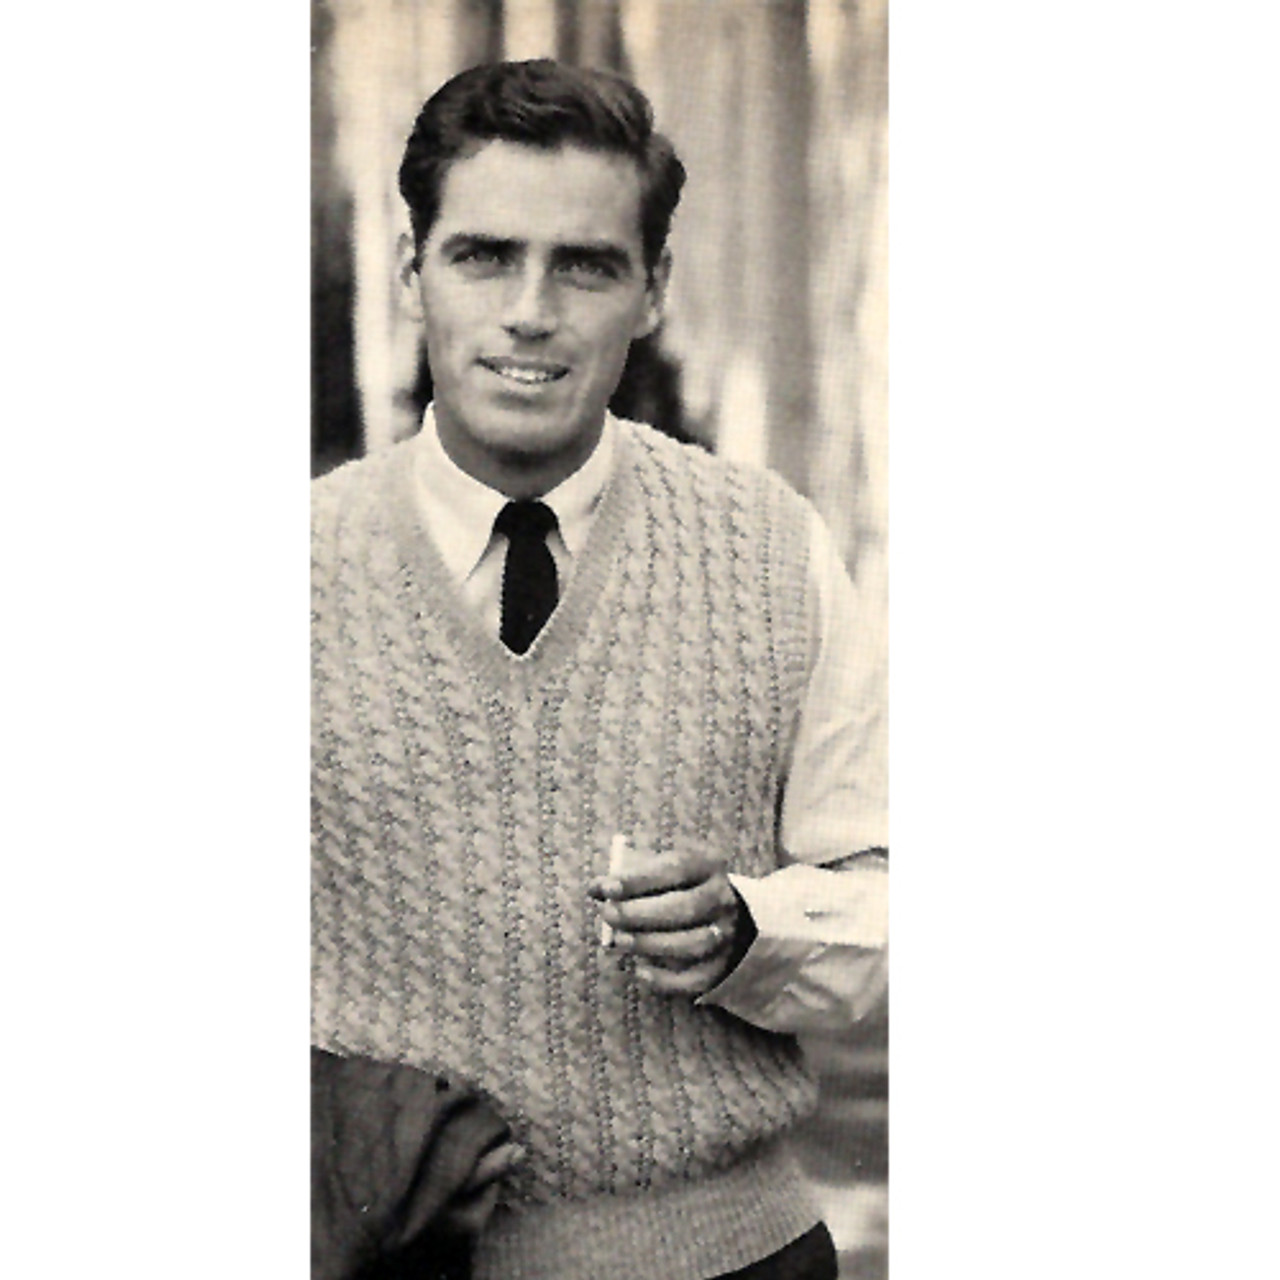 Mens Knitted Pullover Cable Vest Pattern, Vintage 1950s